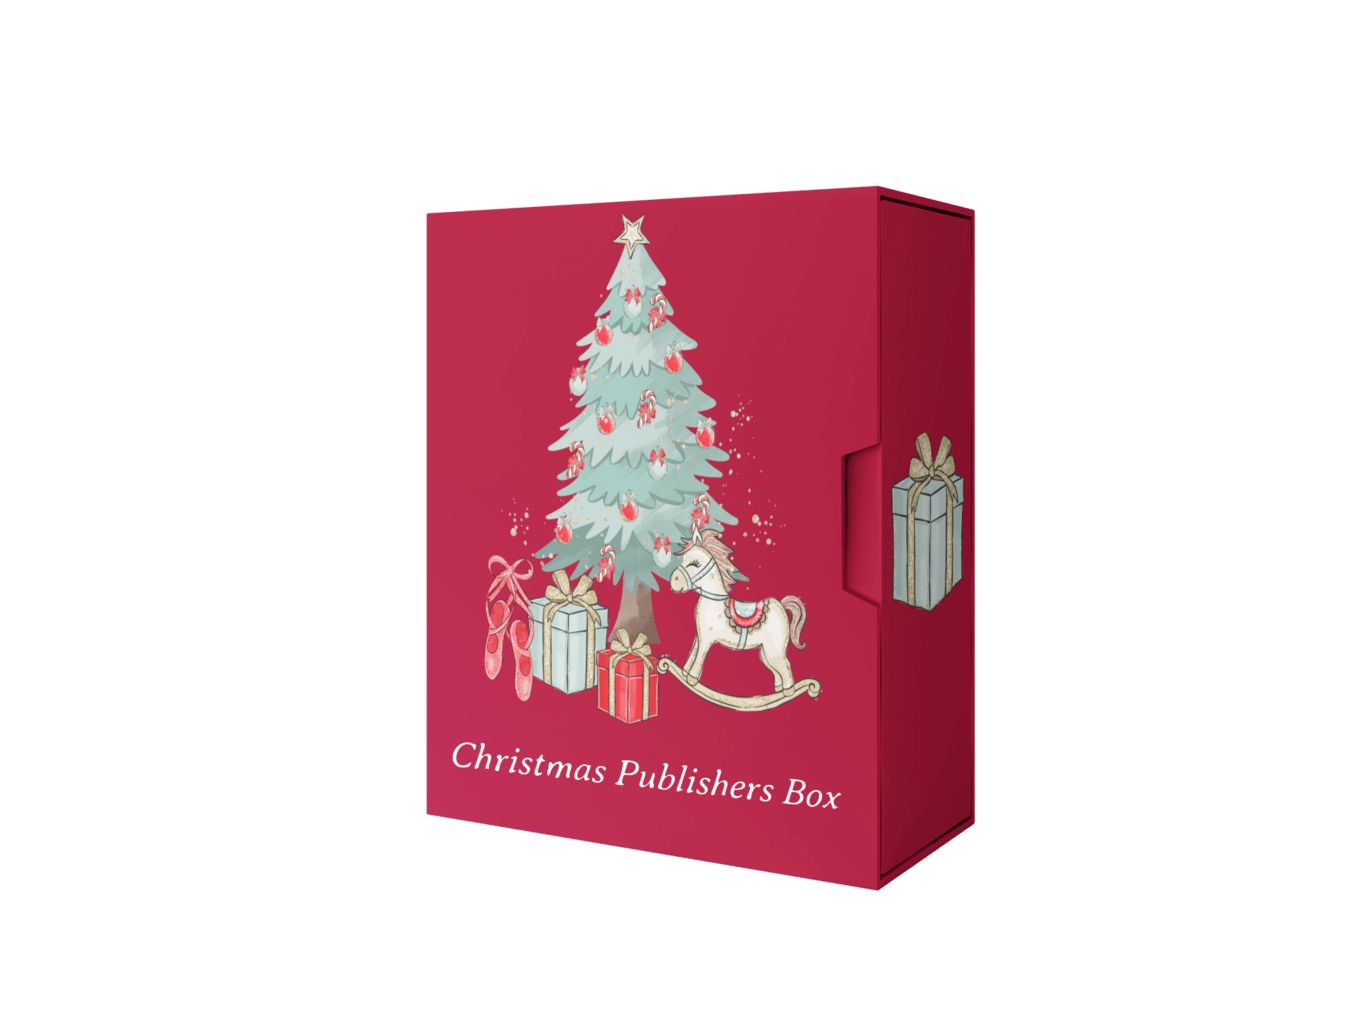 Christmas Publishers Box